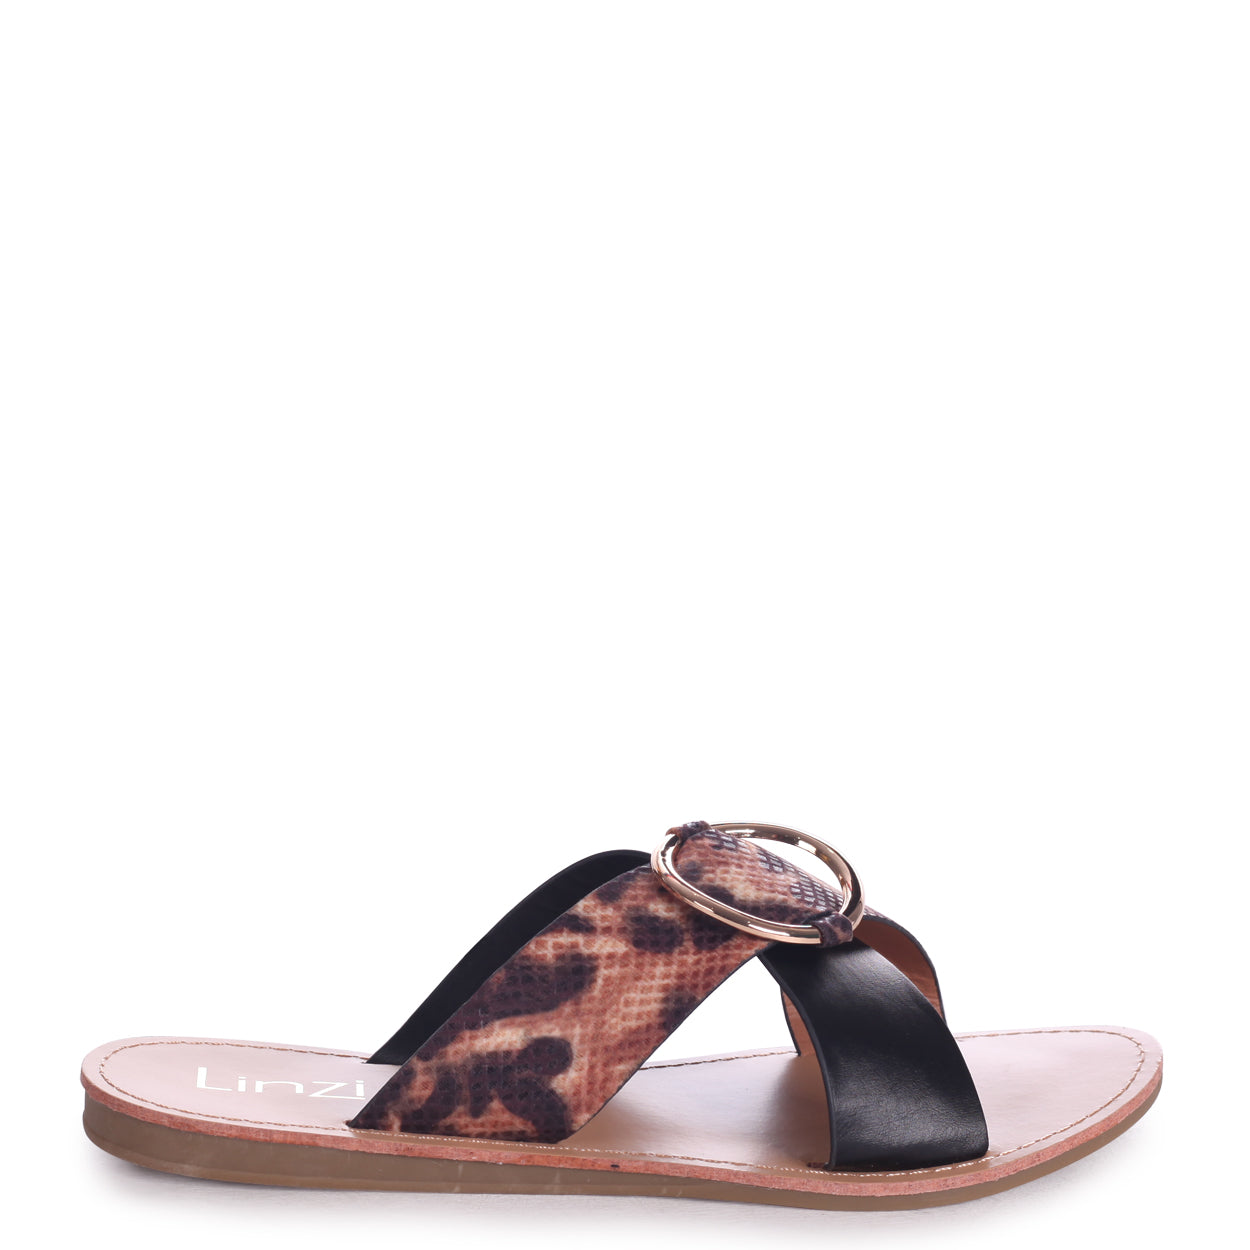 3e02fc2a2309 Leopard Print Slip On Slider With Crossover Front Strap & Ring ...